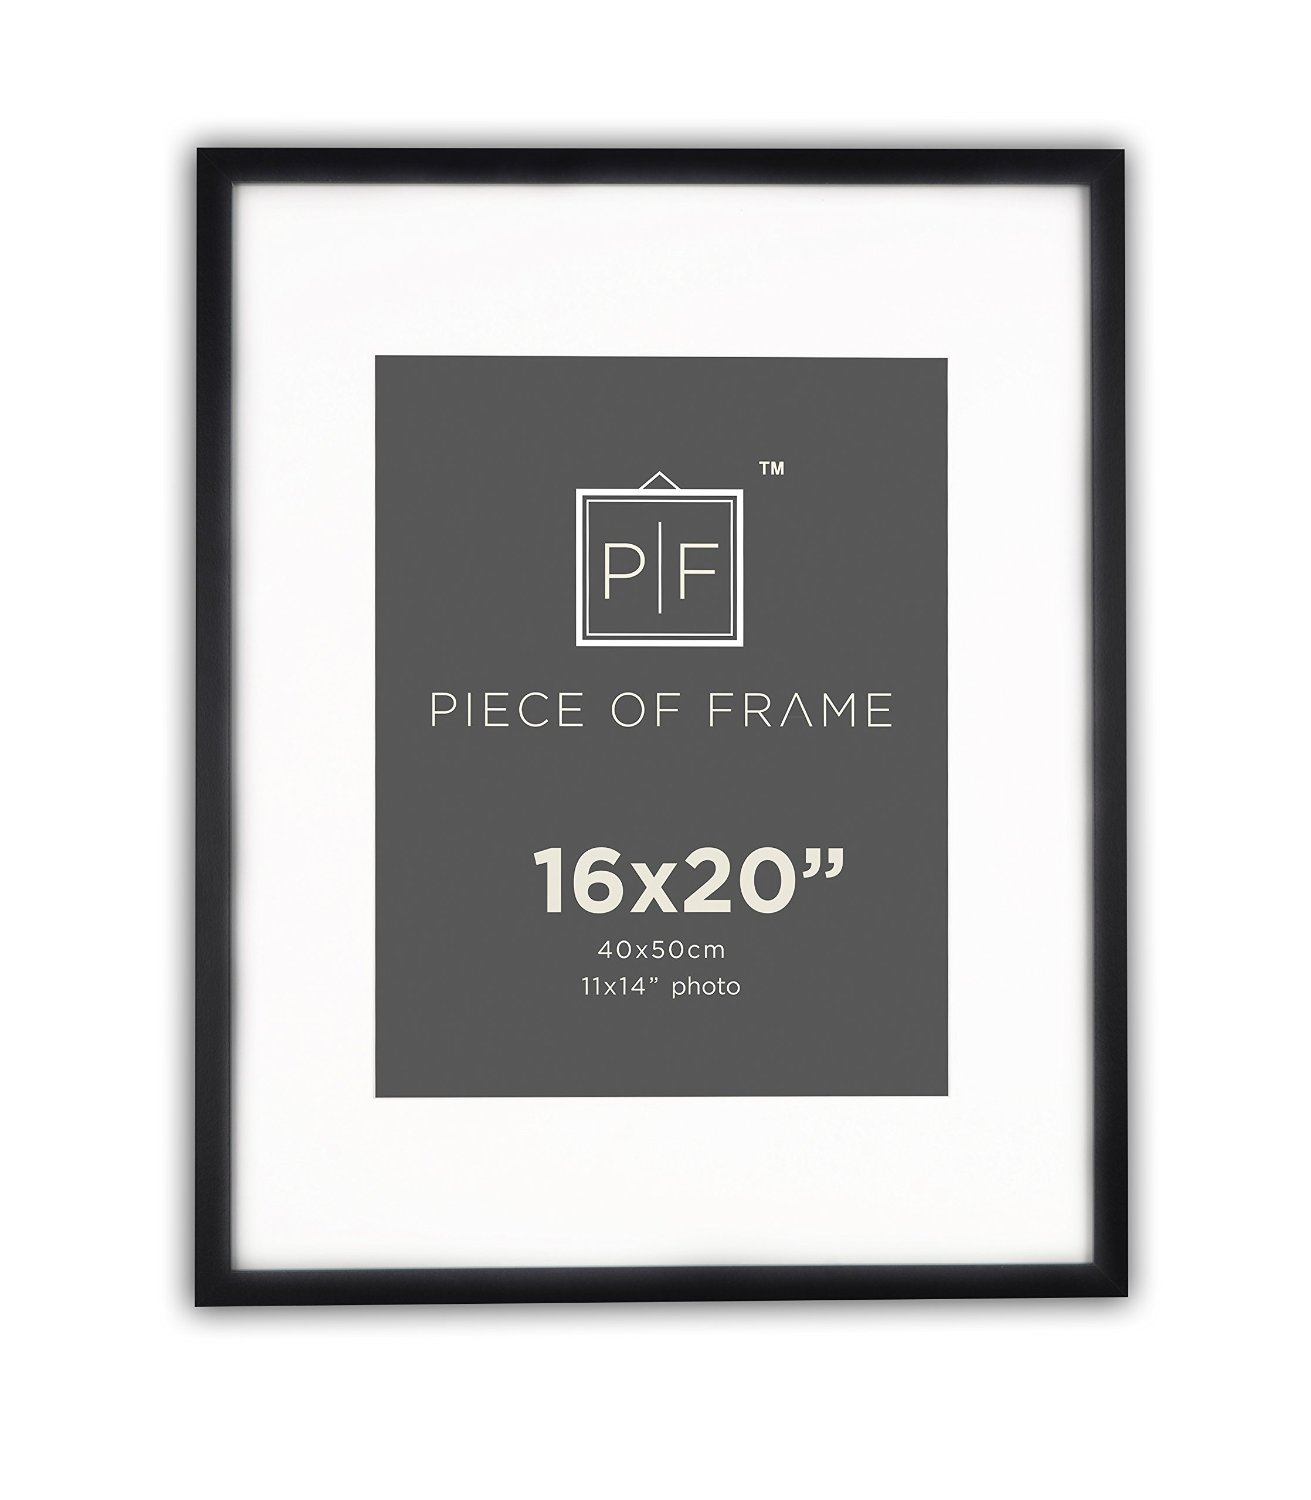 Cheap Frame 20 X 14, find Frame 20 X 14 deals on line at Alibaba.com